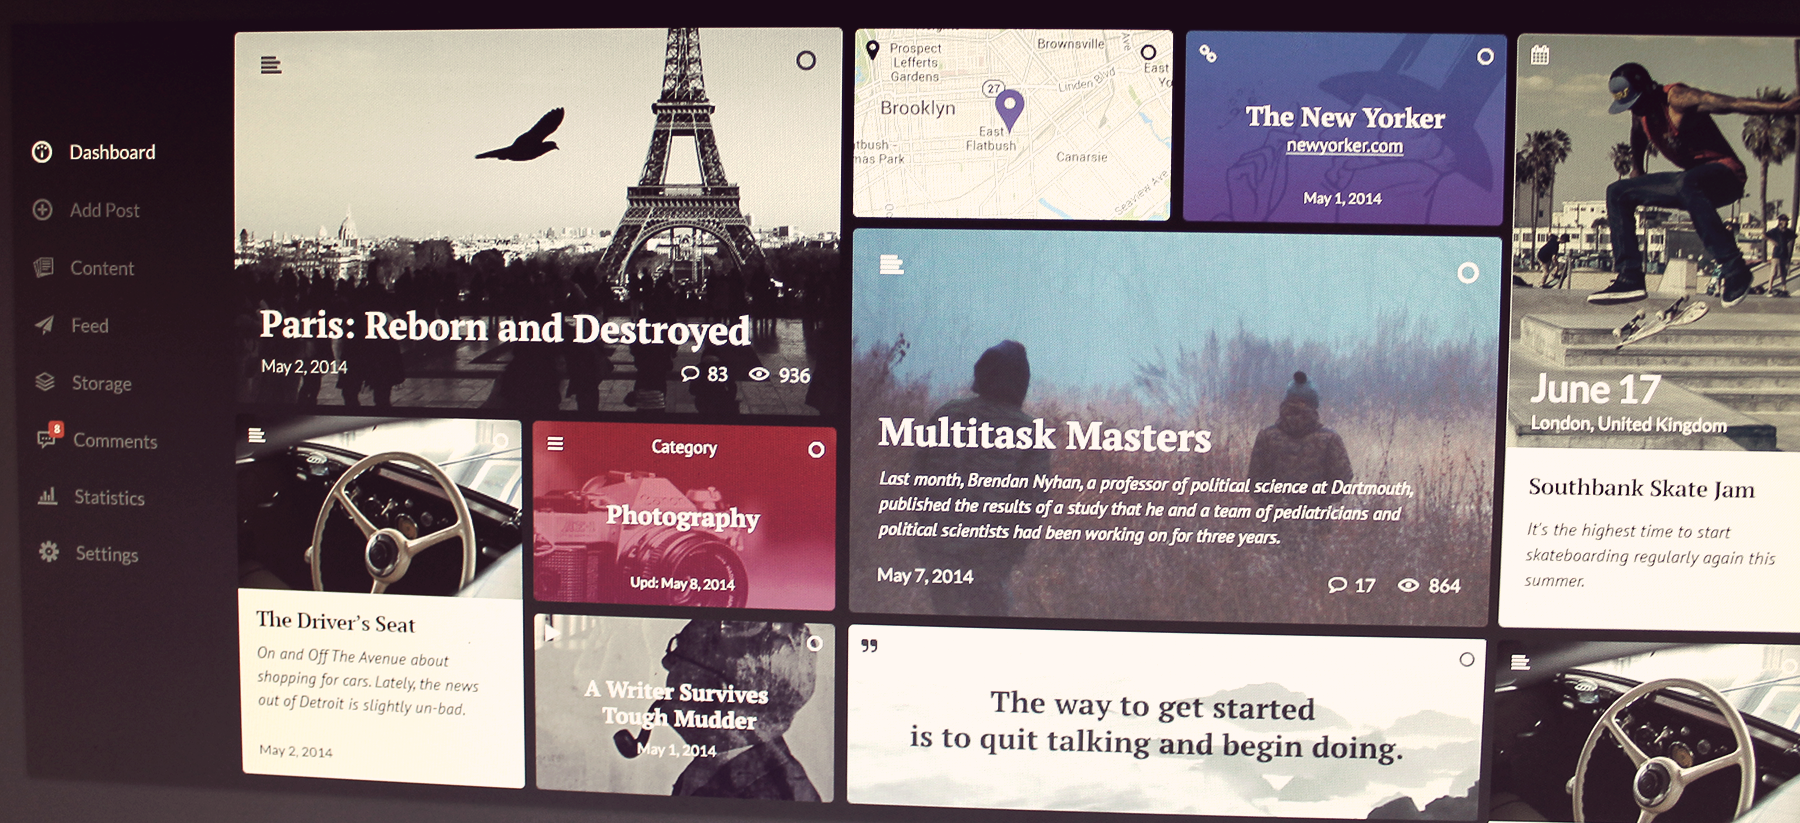 Ink- WordPress Content by Kyril Ku